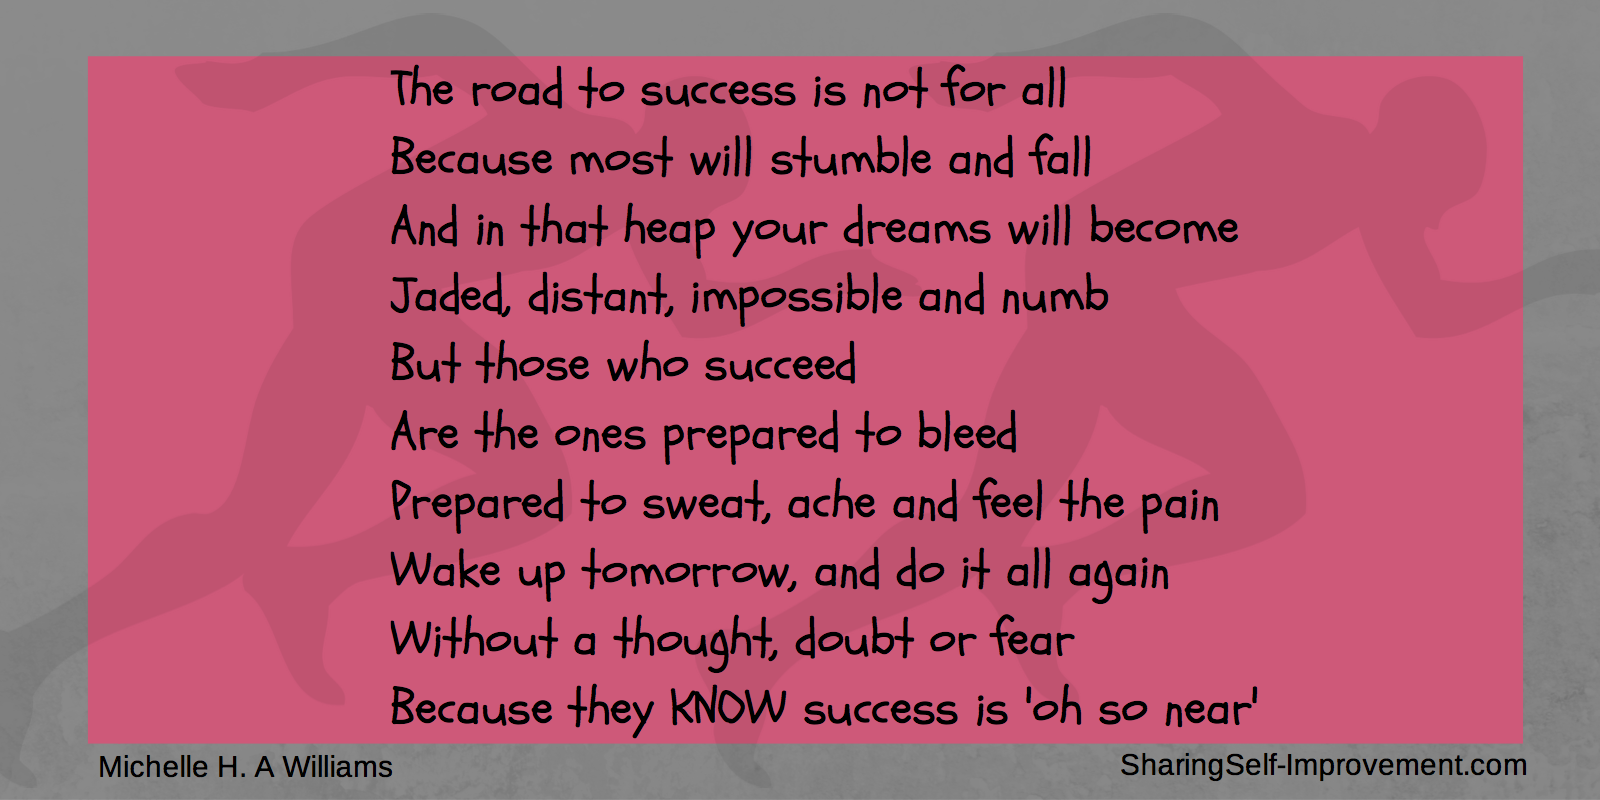 This Poem Is Only For Those Who No Matter What Will Succeed The Ones Prepared To Bleed Poem Success Self Improvement Body Mind Spirit Monday Motivation